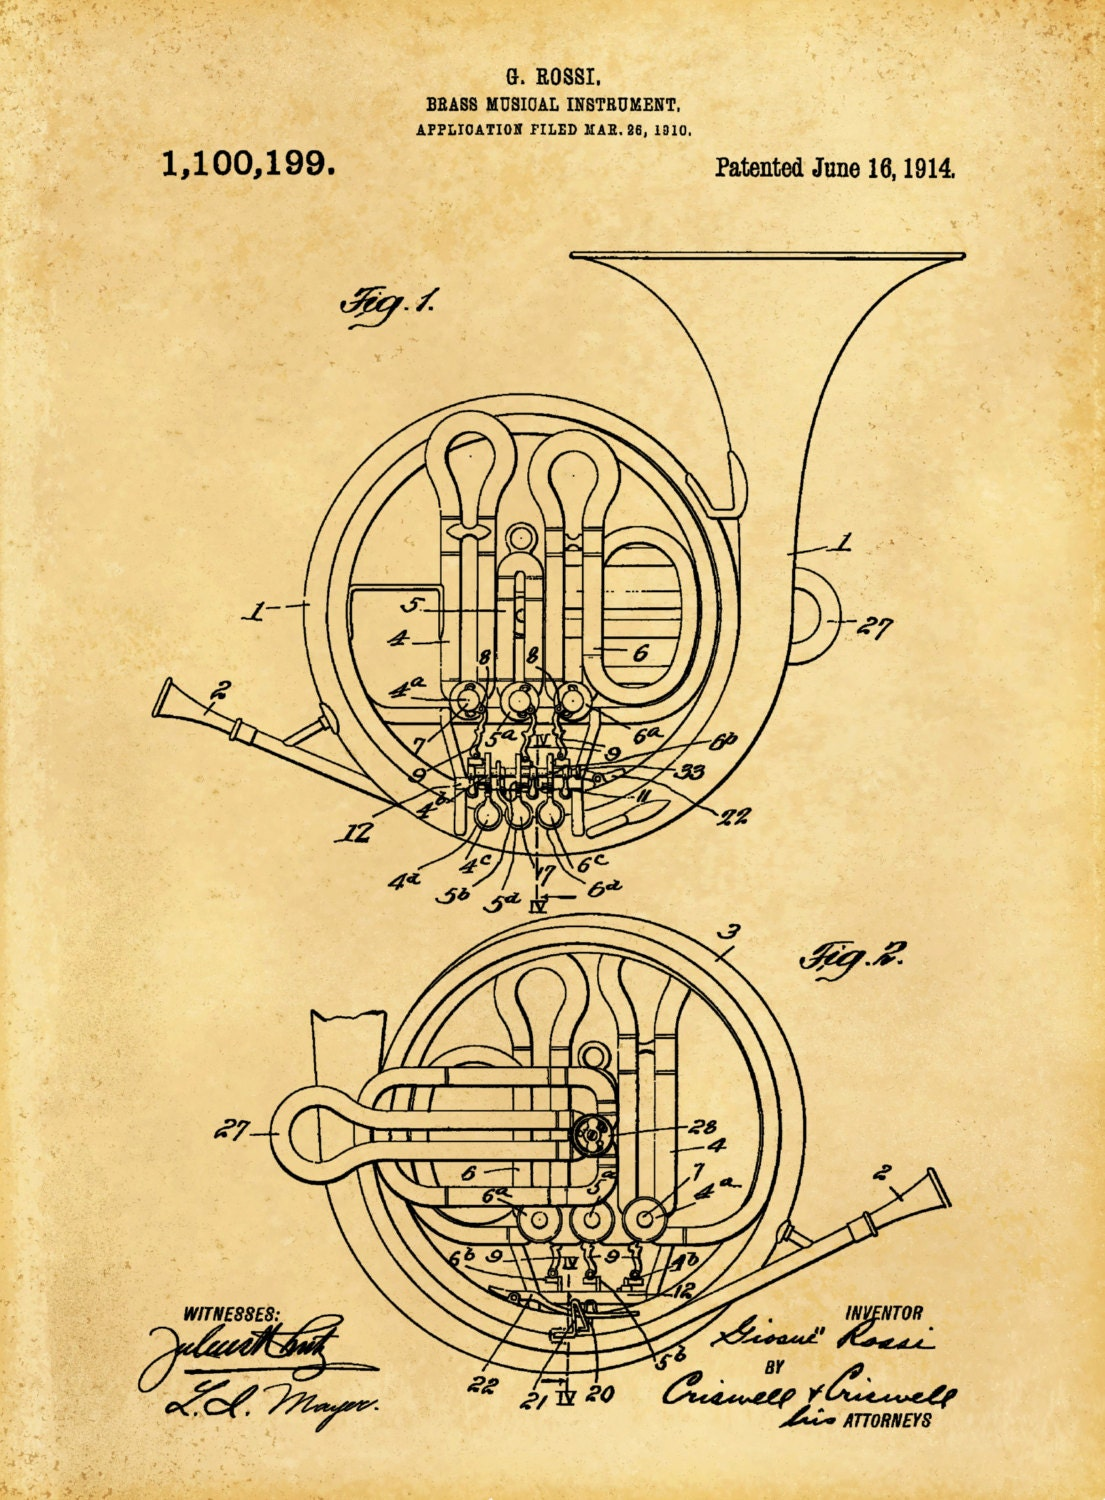 French Horn Patent Patent Print Wall Decor Music Poster Music